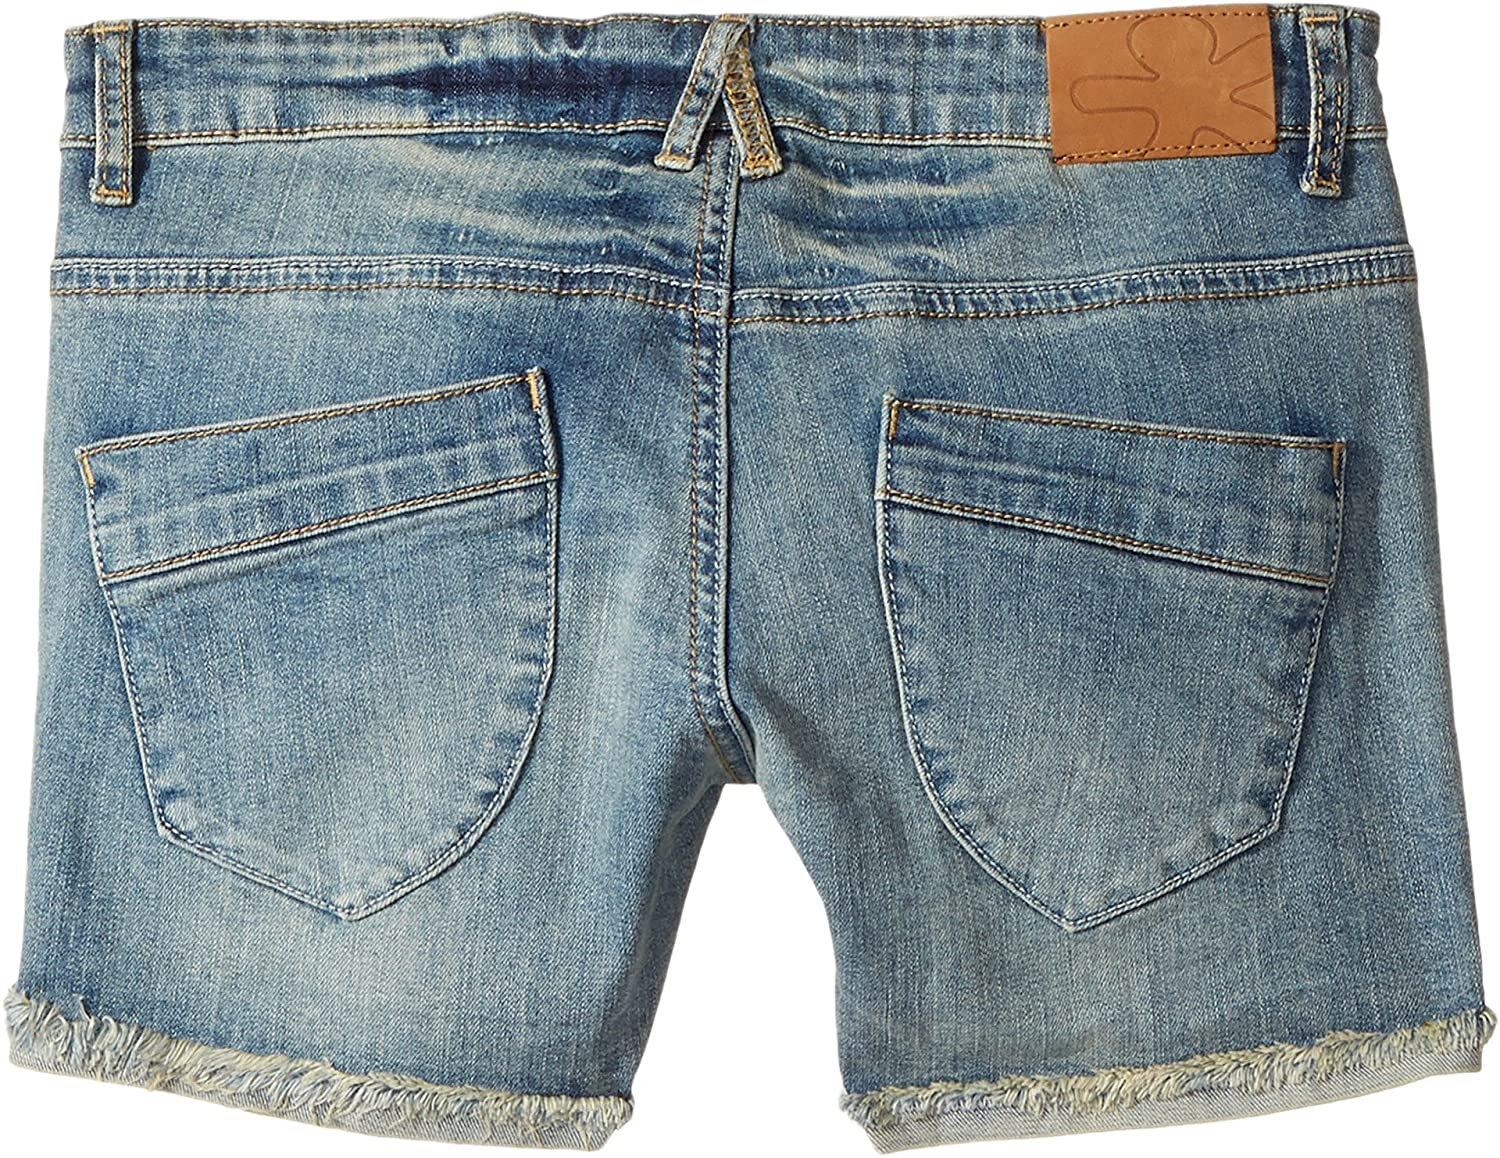 Shorts In Denim Toobydoo Womens Tooby Jeans Toddler//Little Kids//Big Kids